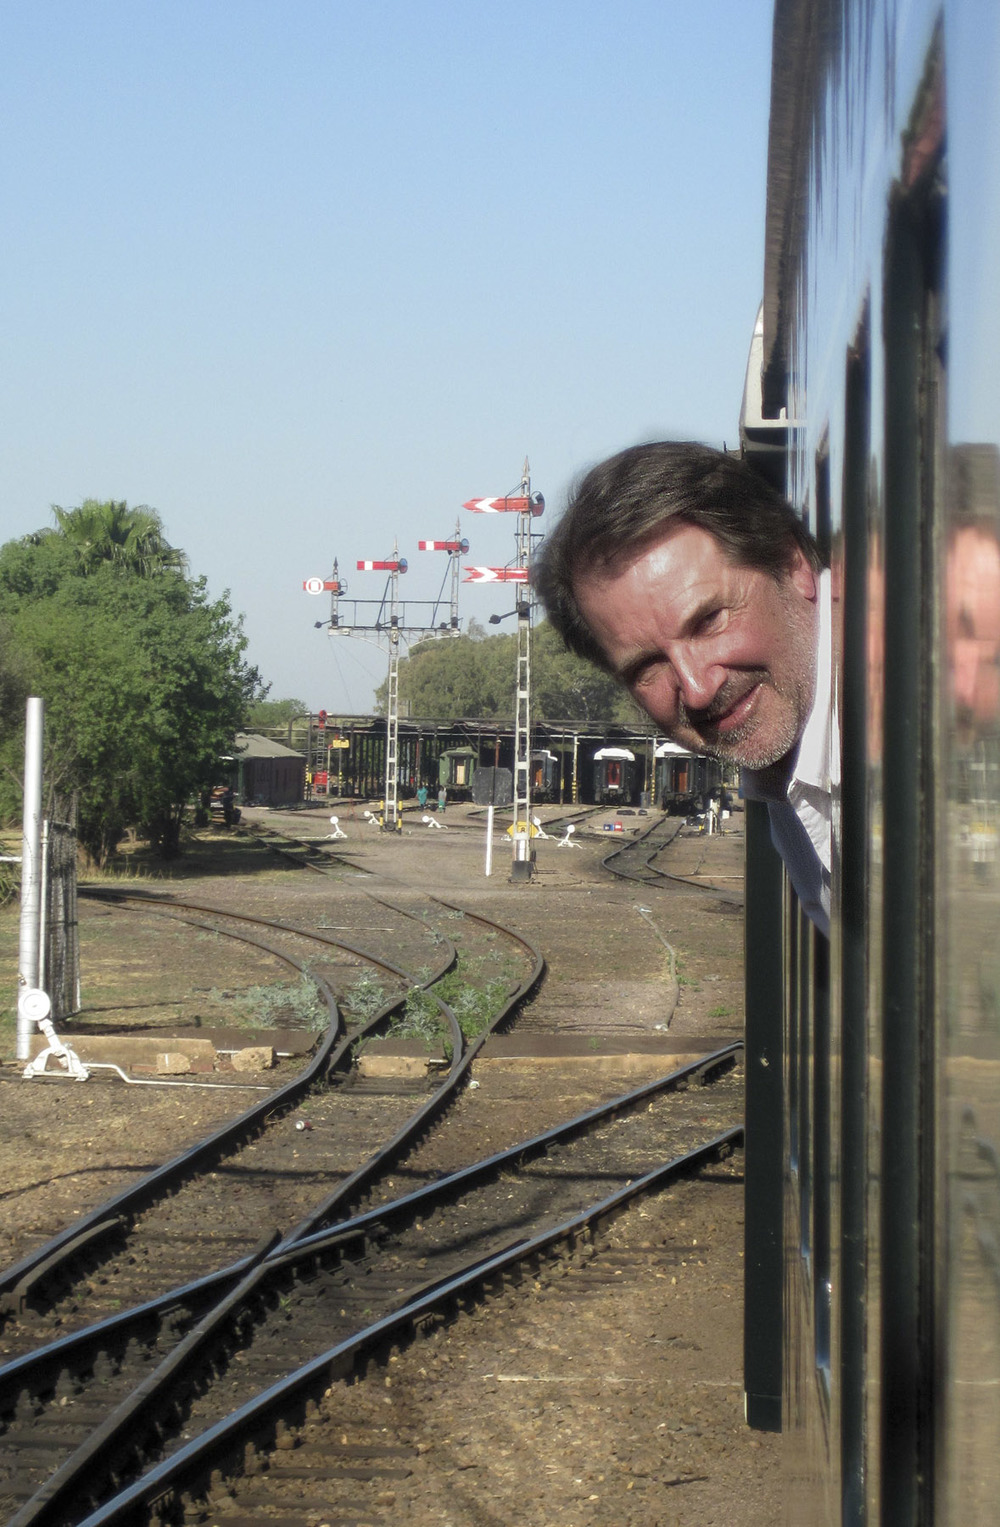 Pulling out of the station in Pretoria